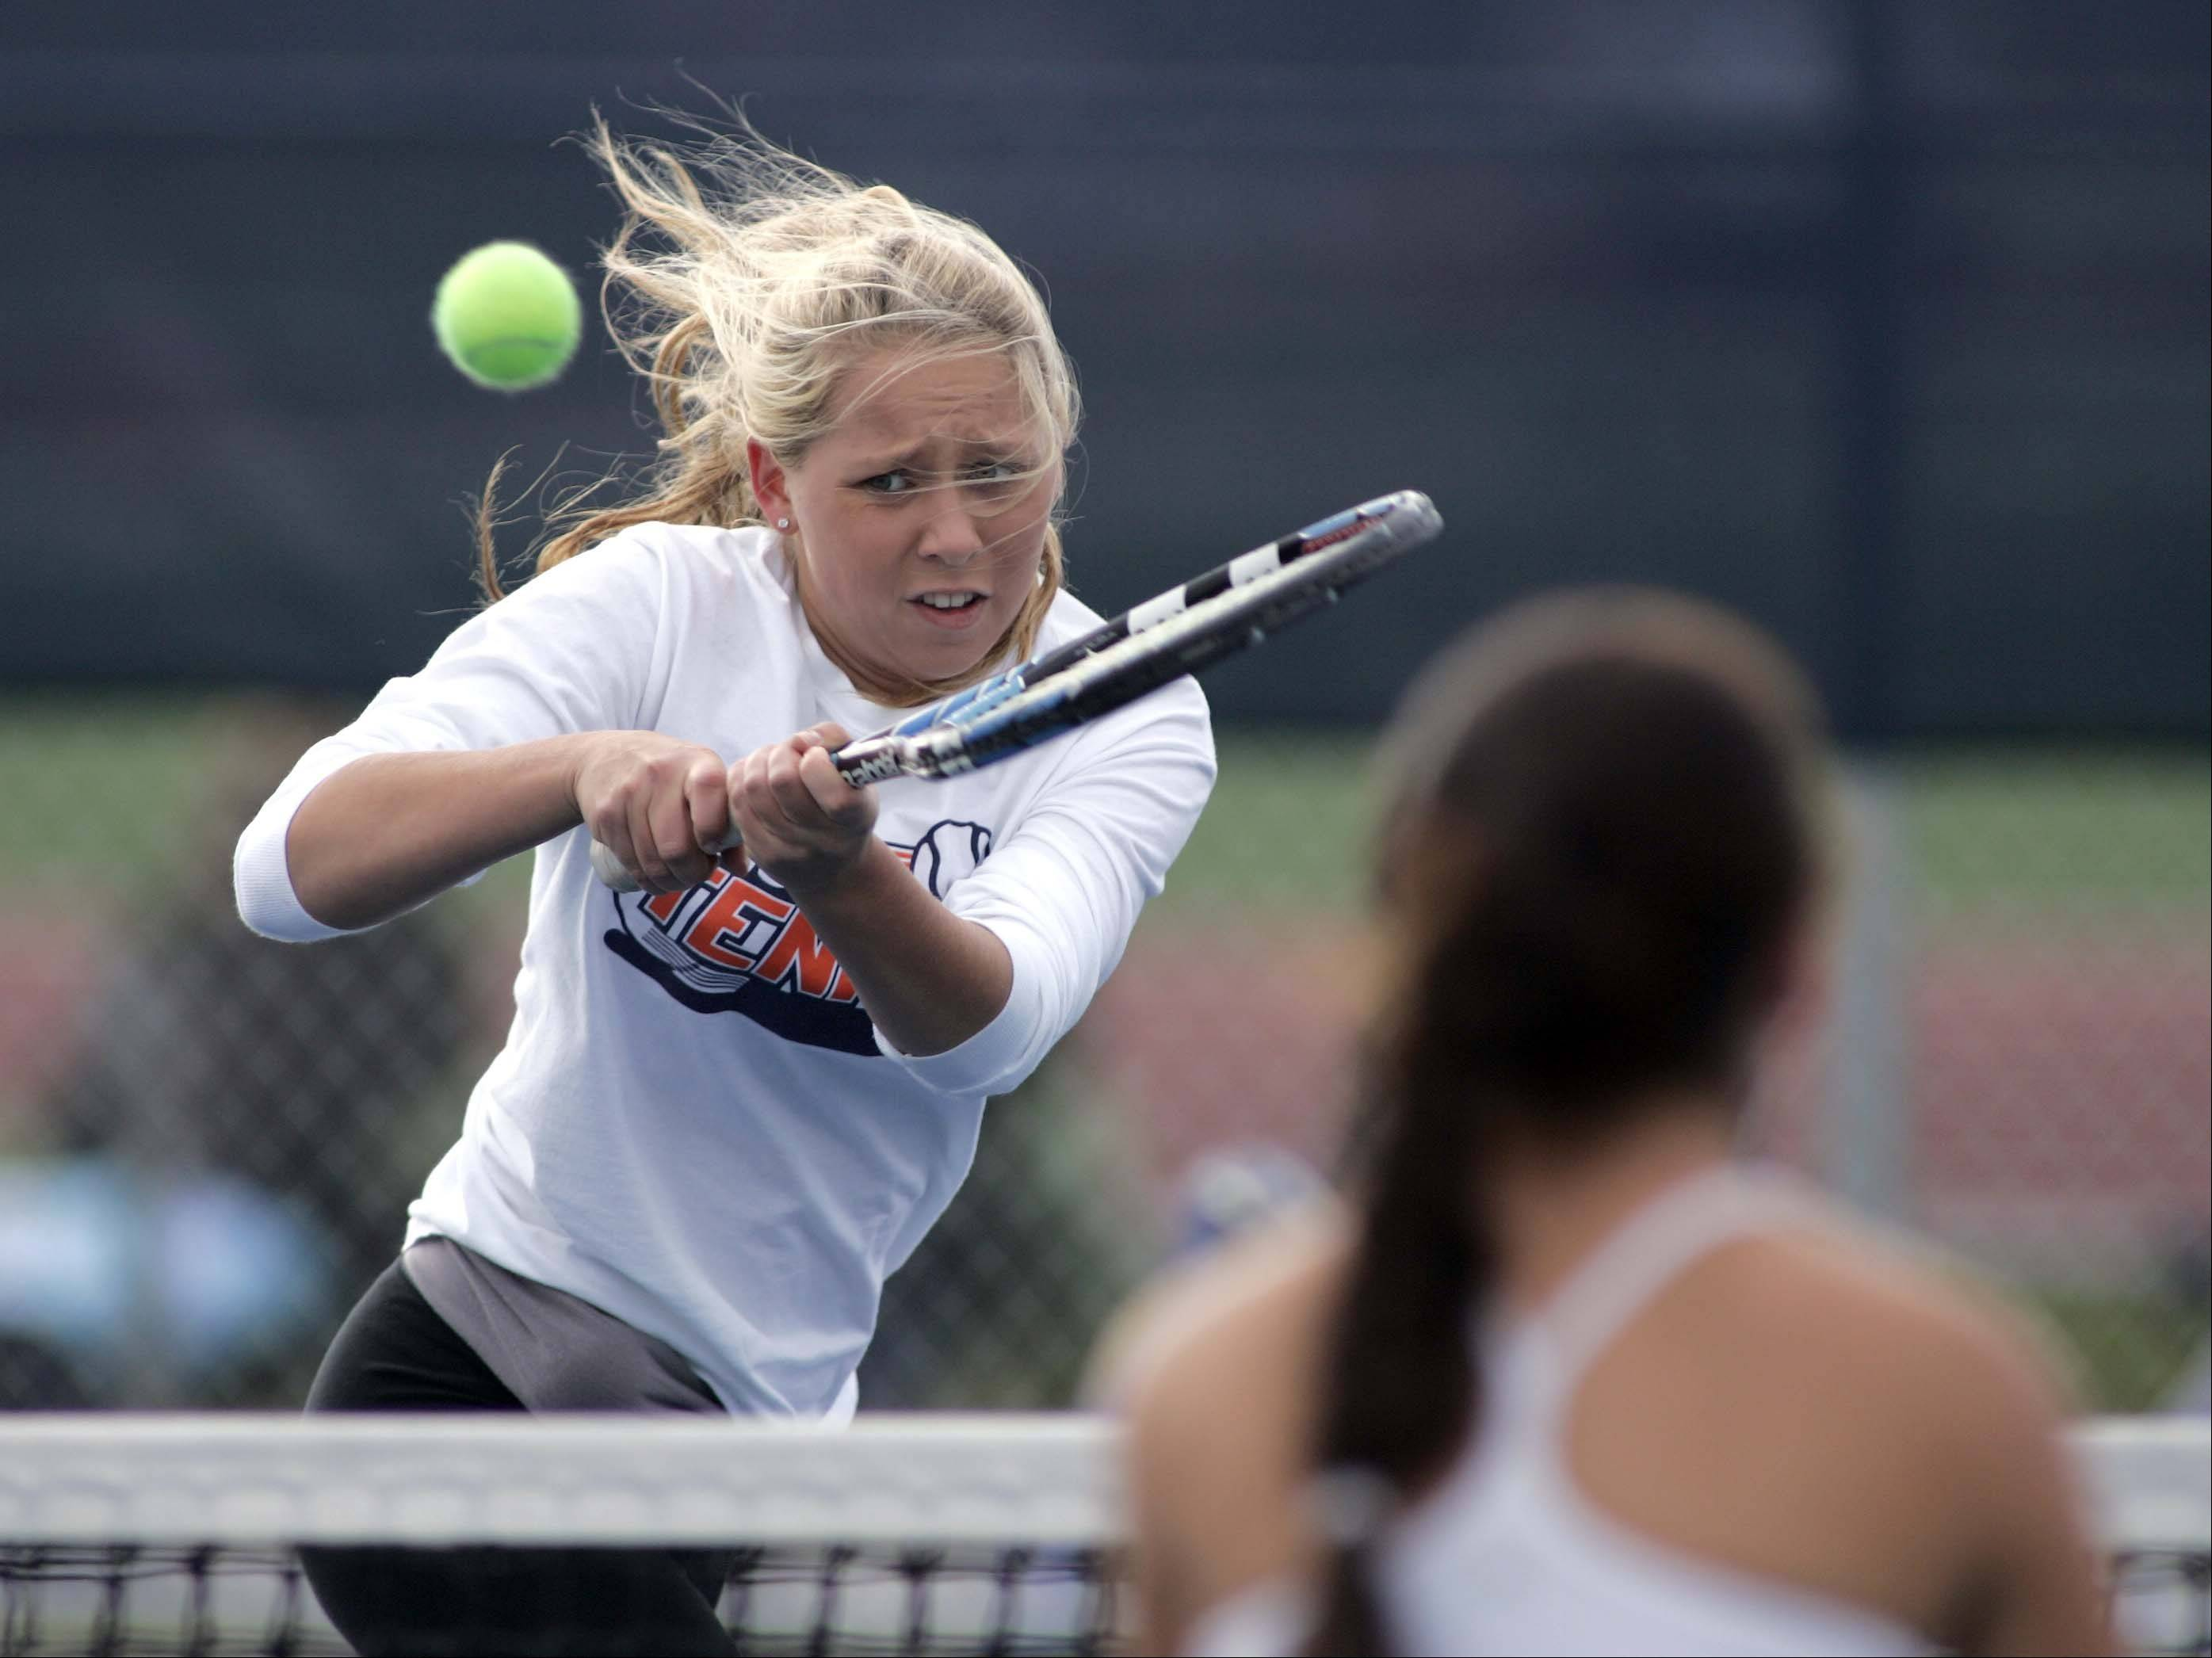 Buffalo Grove's Lauren Goggin competes in her doubles match against Chicago Latin during the IHSA girls state tennis finals at Buffalo Grove High School Thursday.